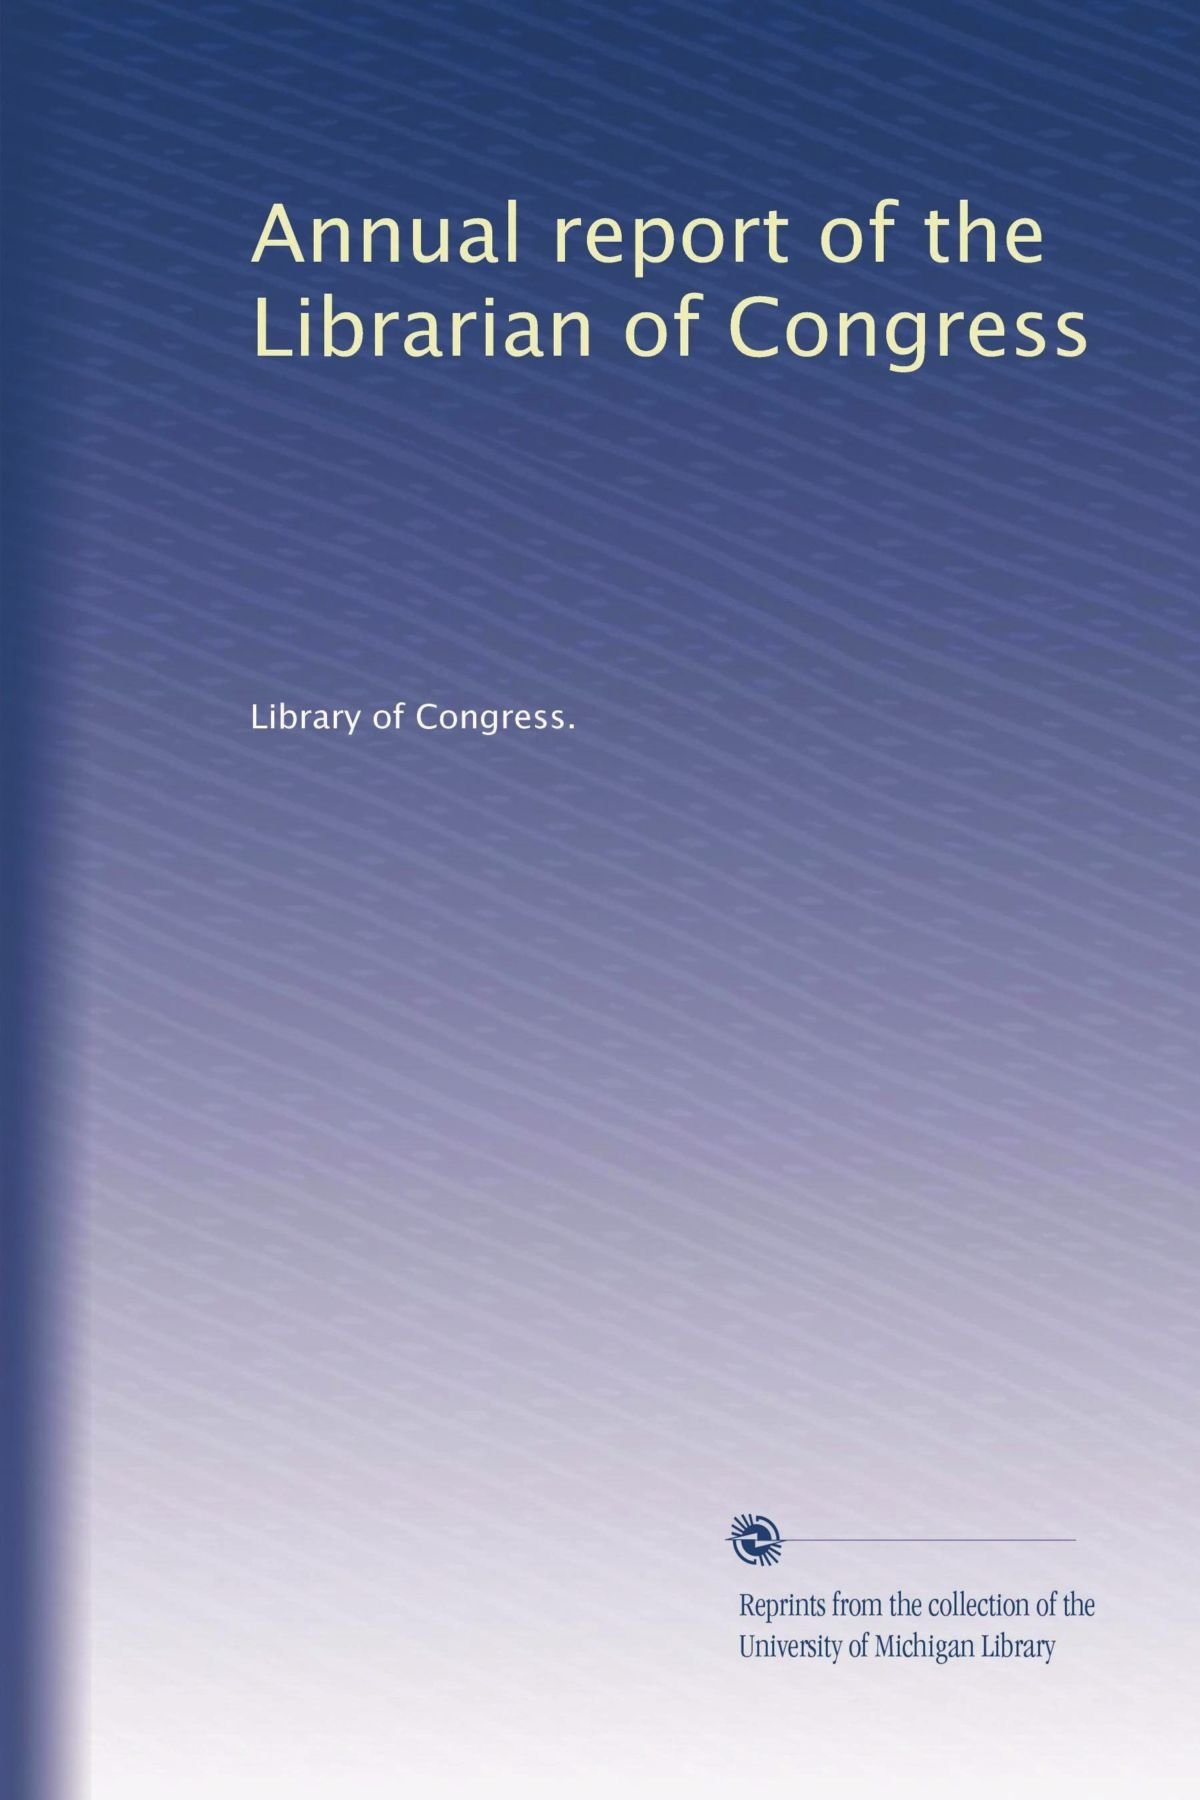 Annual report of the Librarian of Congress PDF